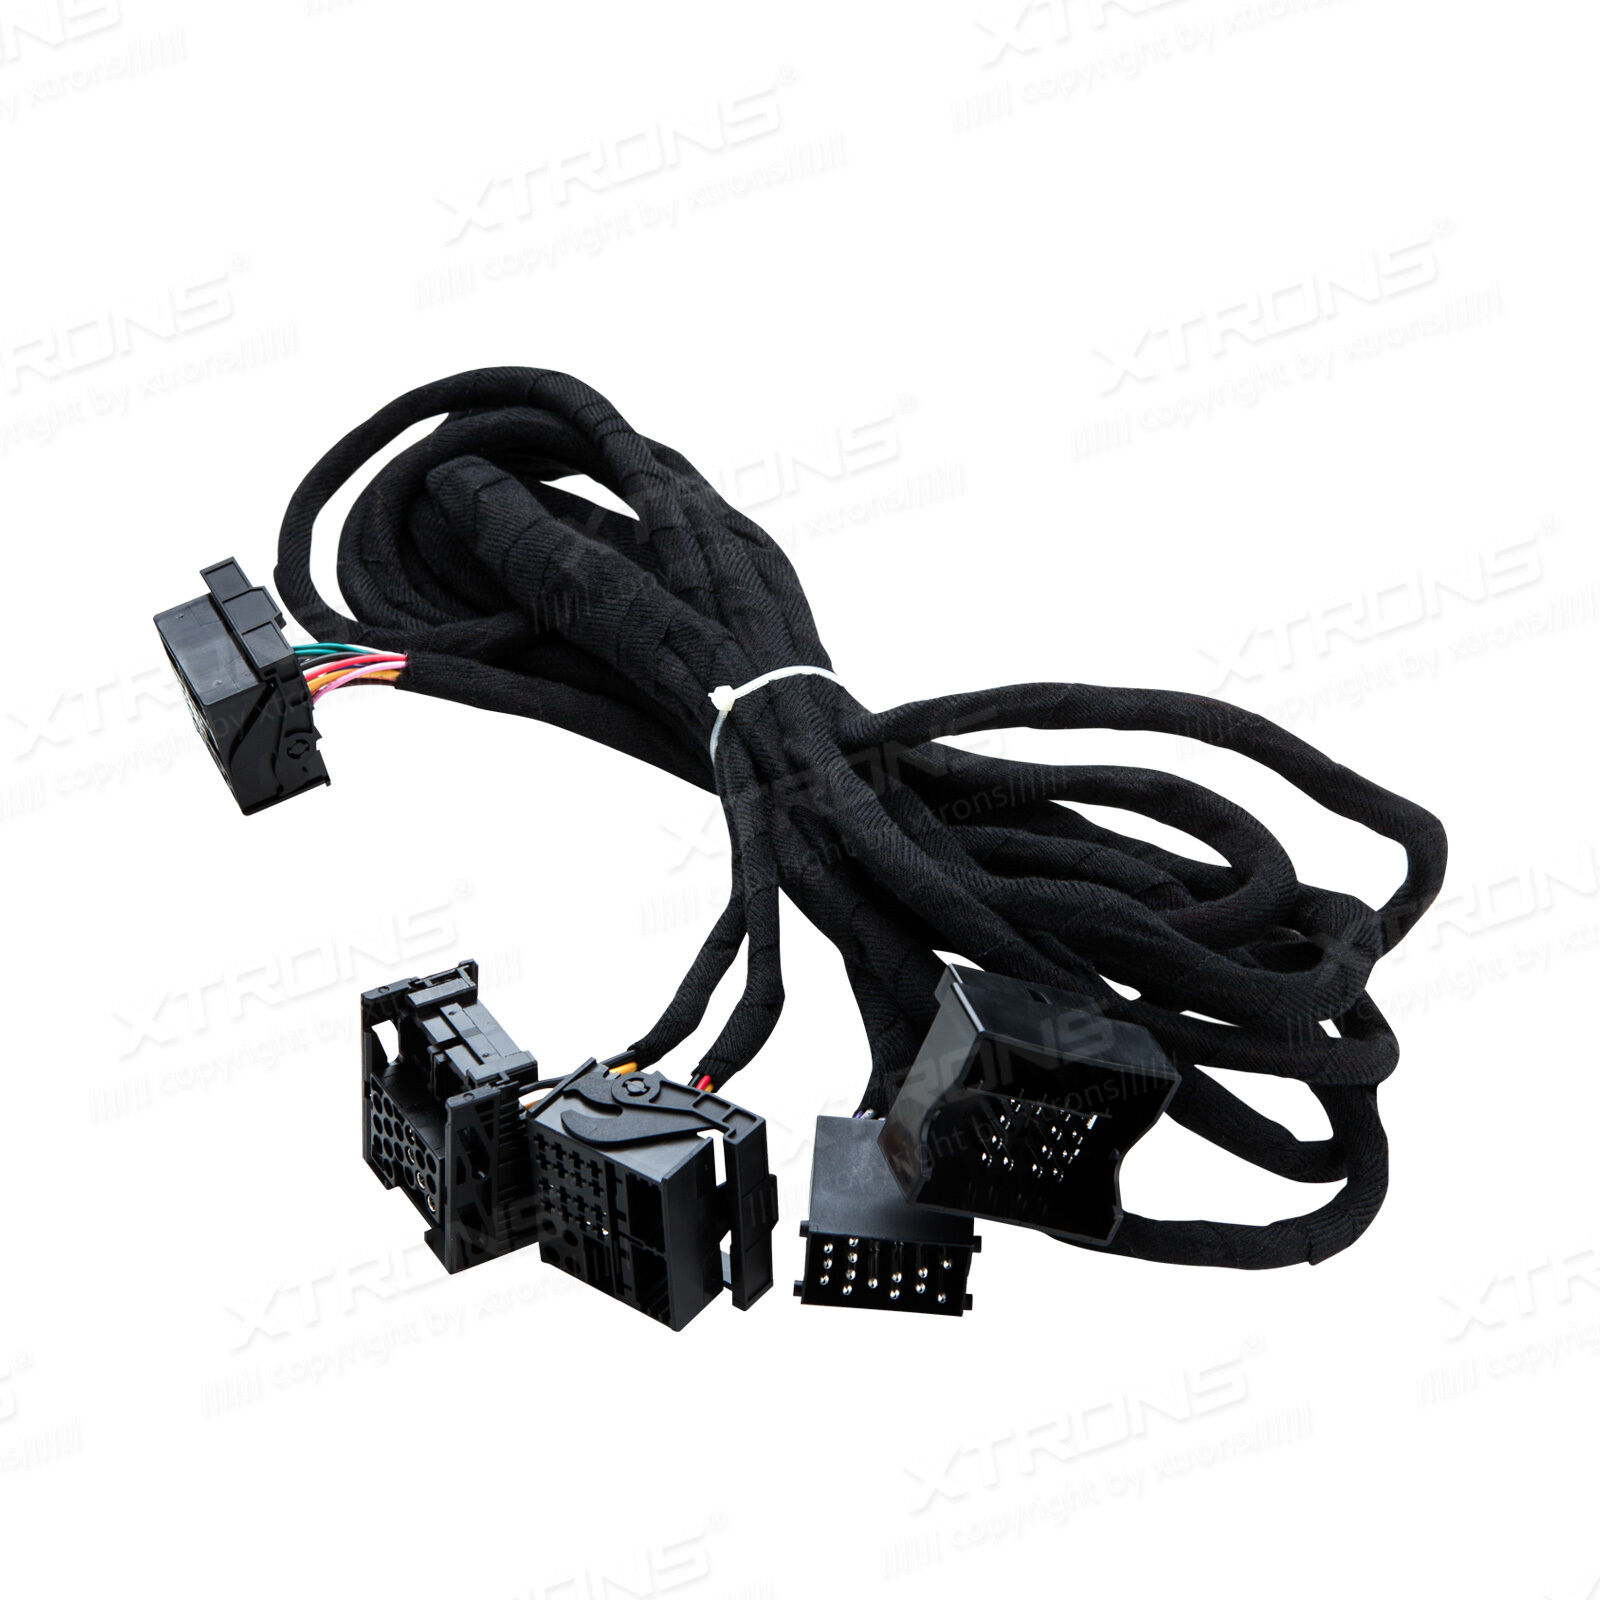 s l1600 car stereo iso wiring harness extra long 6m cable adapter for bmw bmw e38 radio wiring harness at cos-gaming.co